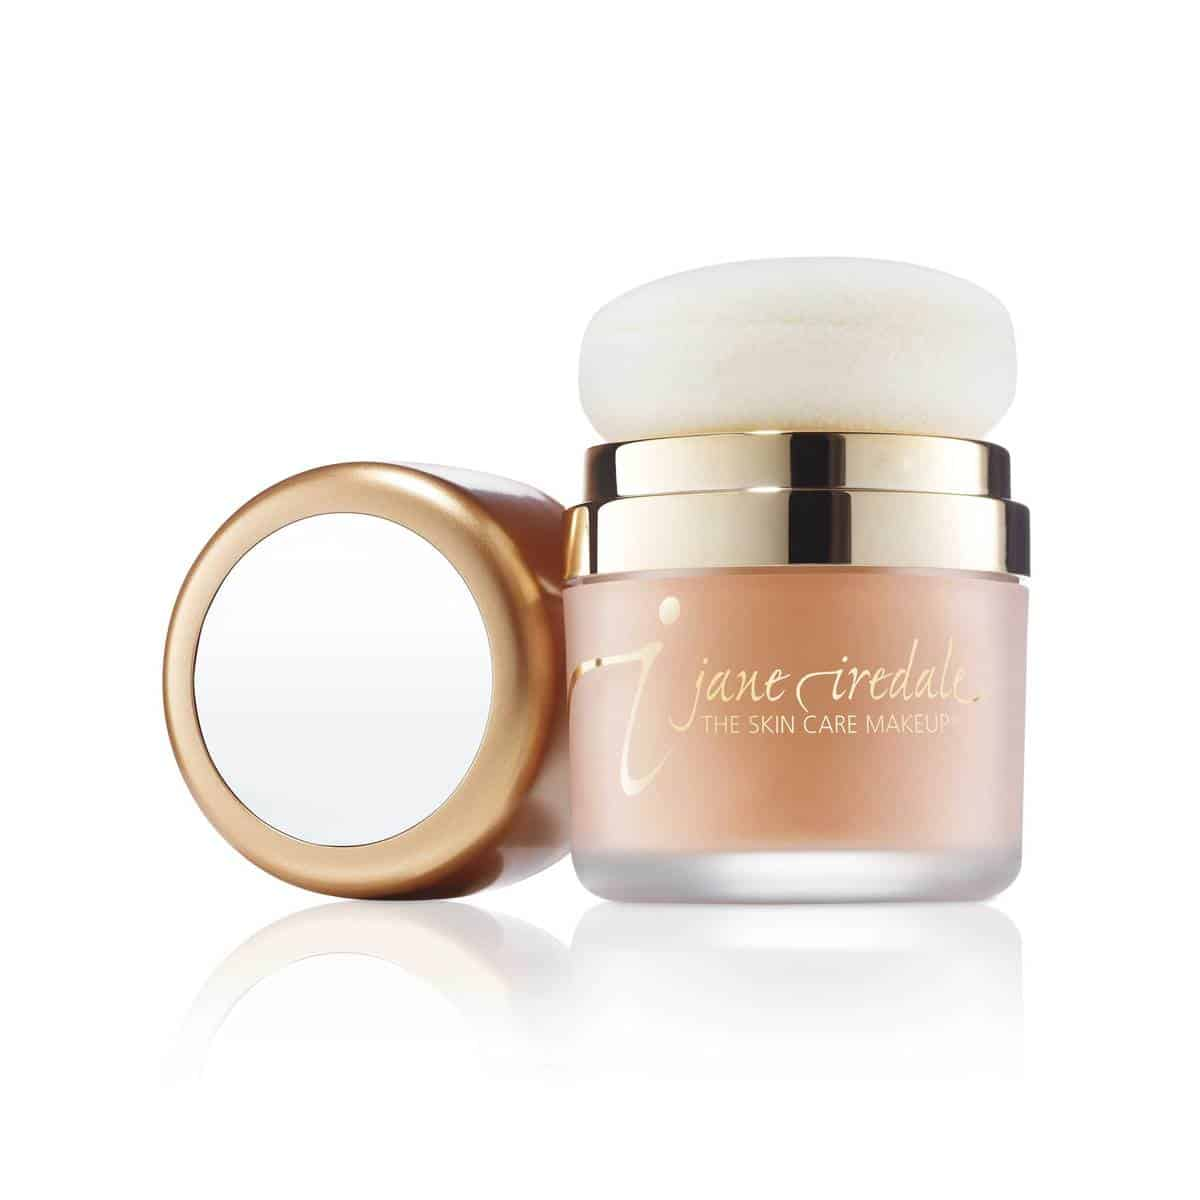 Tanned Powder-Me SPF Dry Sunscreen